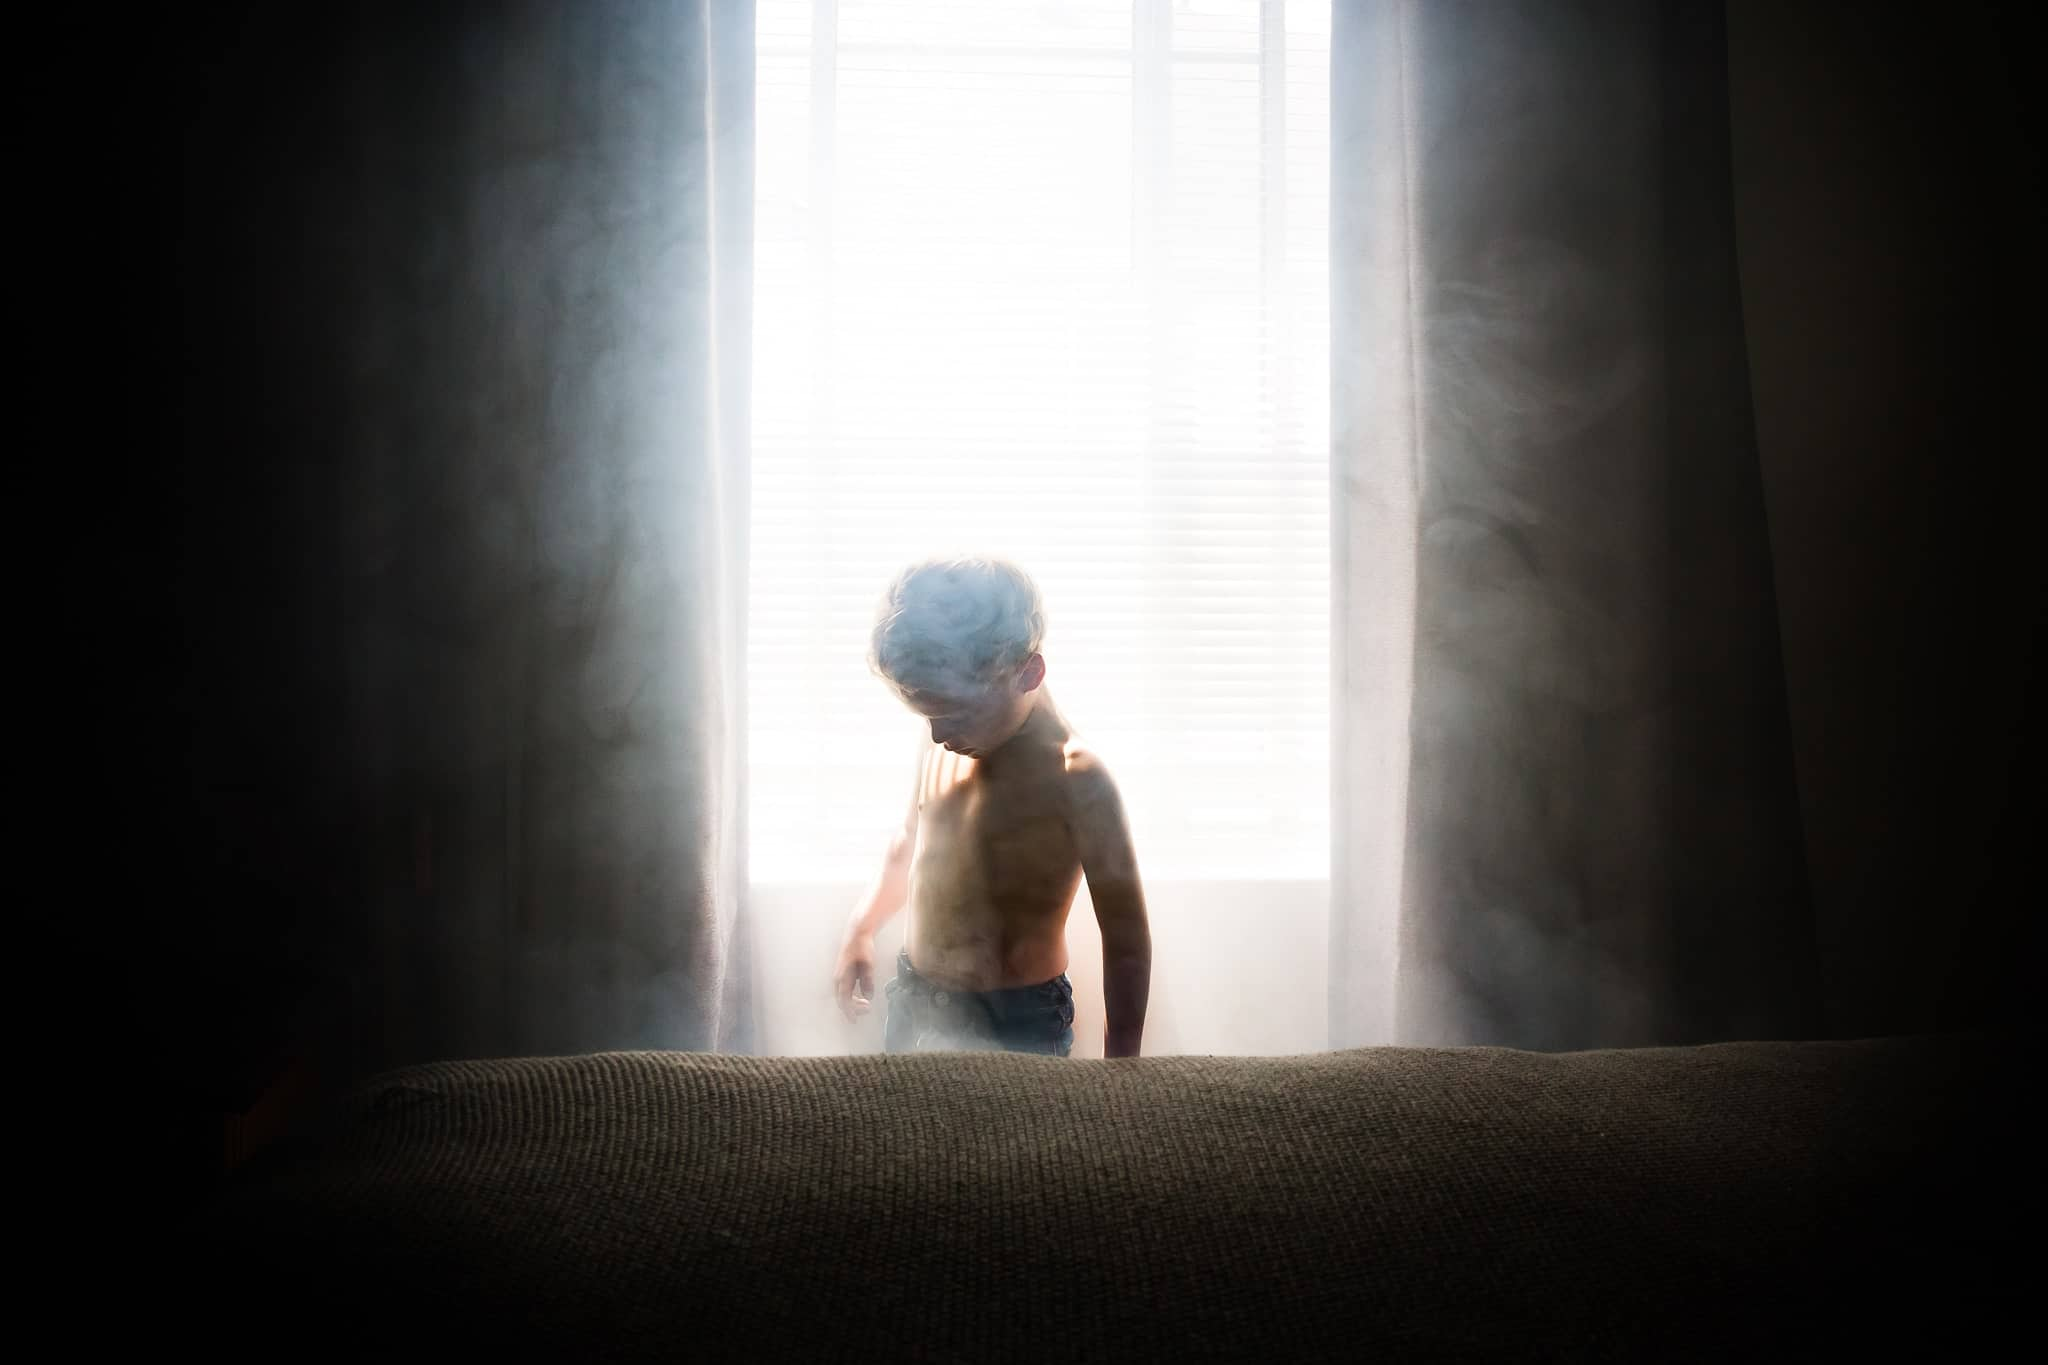 toddler boy emerging from smoke in sunlit window